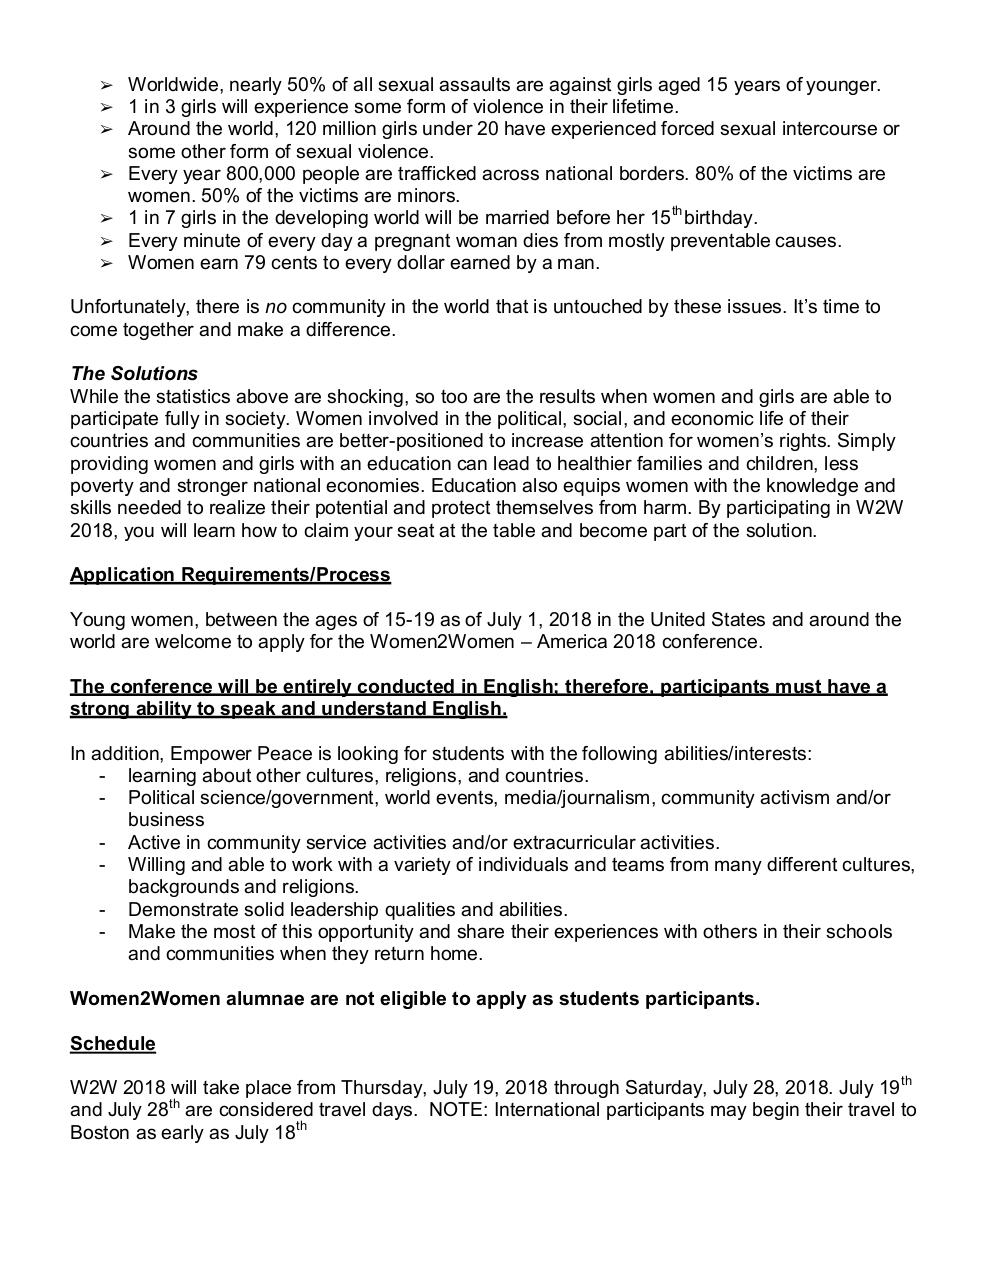 W2W_2018_Student_Application-Boston.pdf - page 2/14